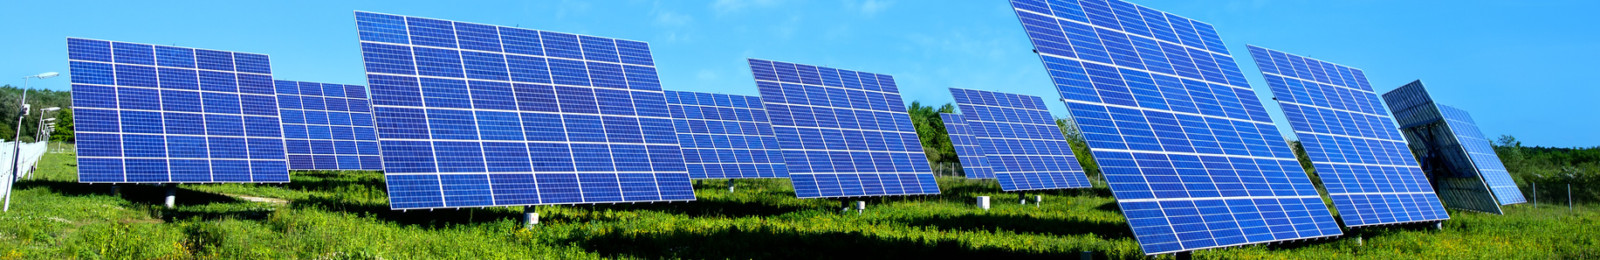 CFC Solutions: U.S. Slaps 30 Percent Tariff on Imported Solar Panels, Effects Unclearpage banner image